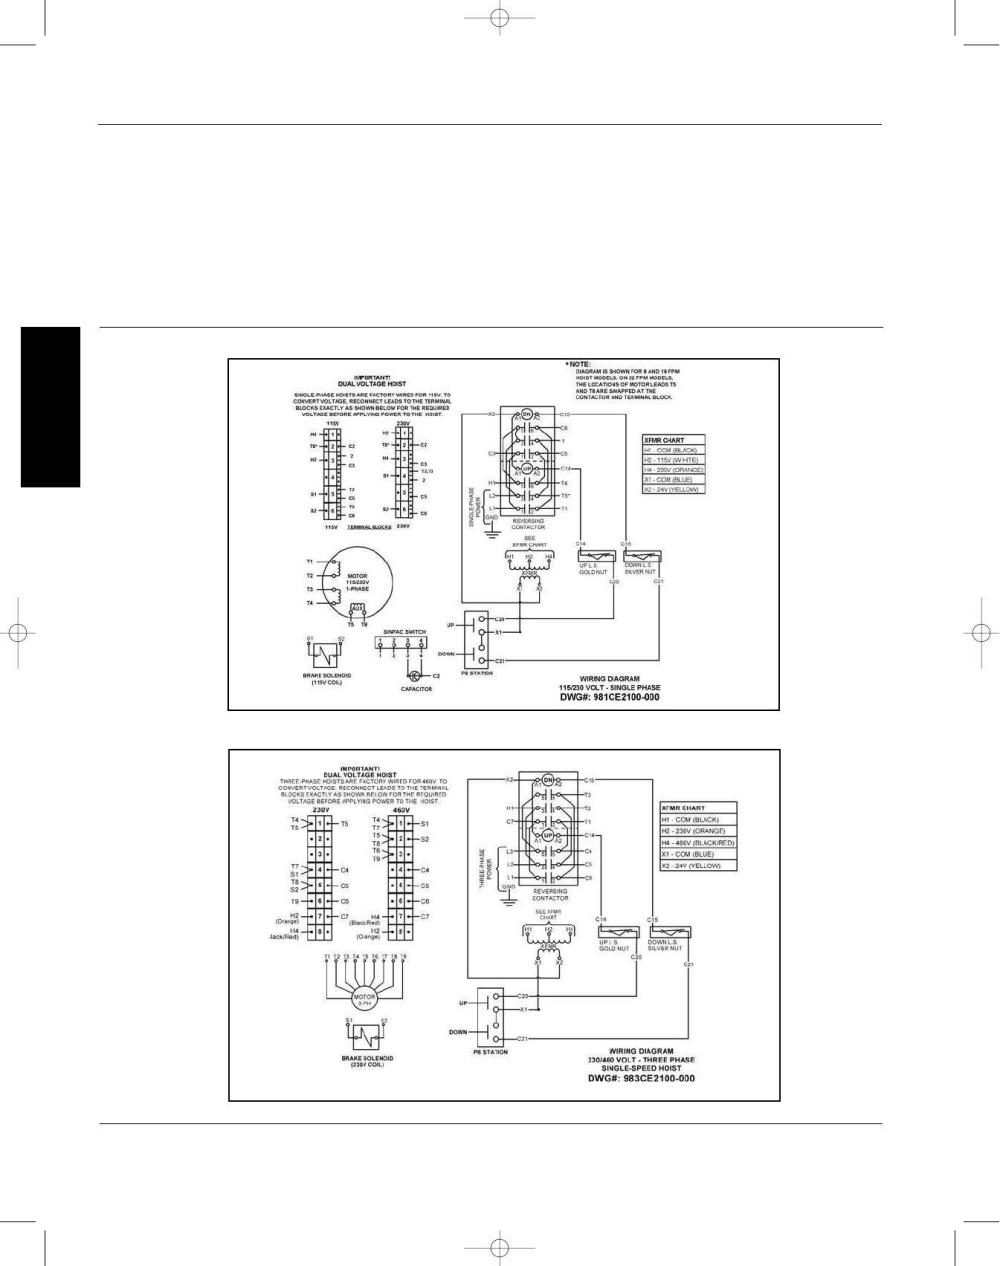 medium resolution of dayton operating instructions and parts manual dayton electric chain hoists